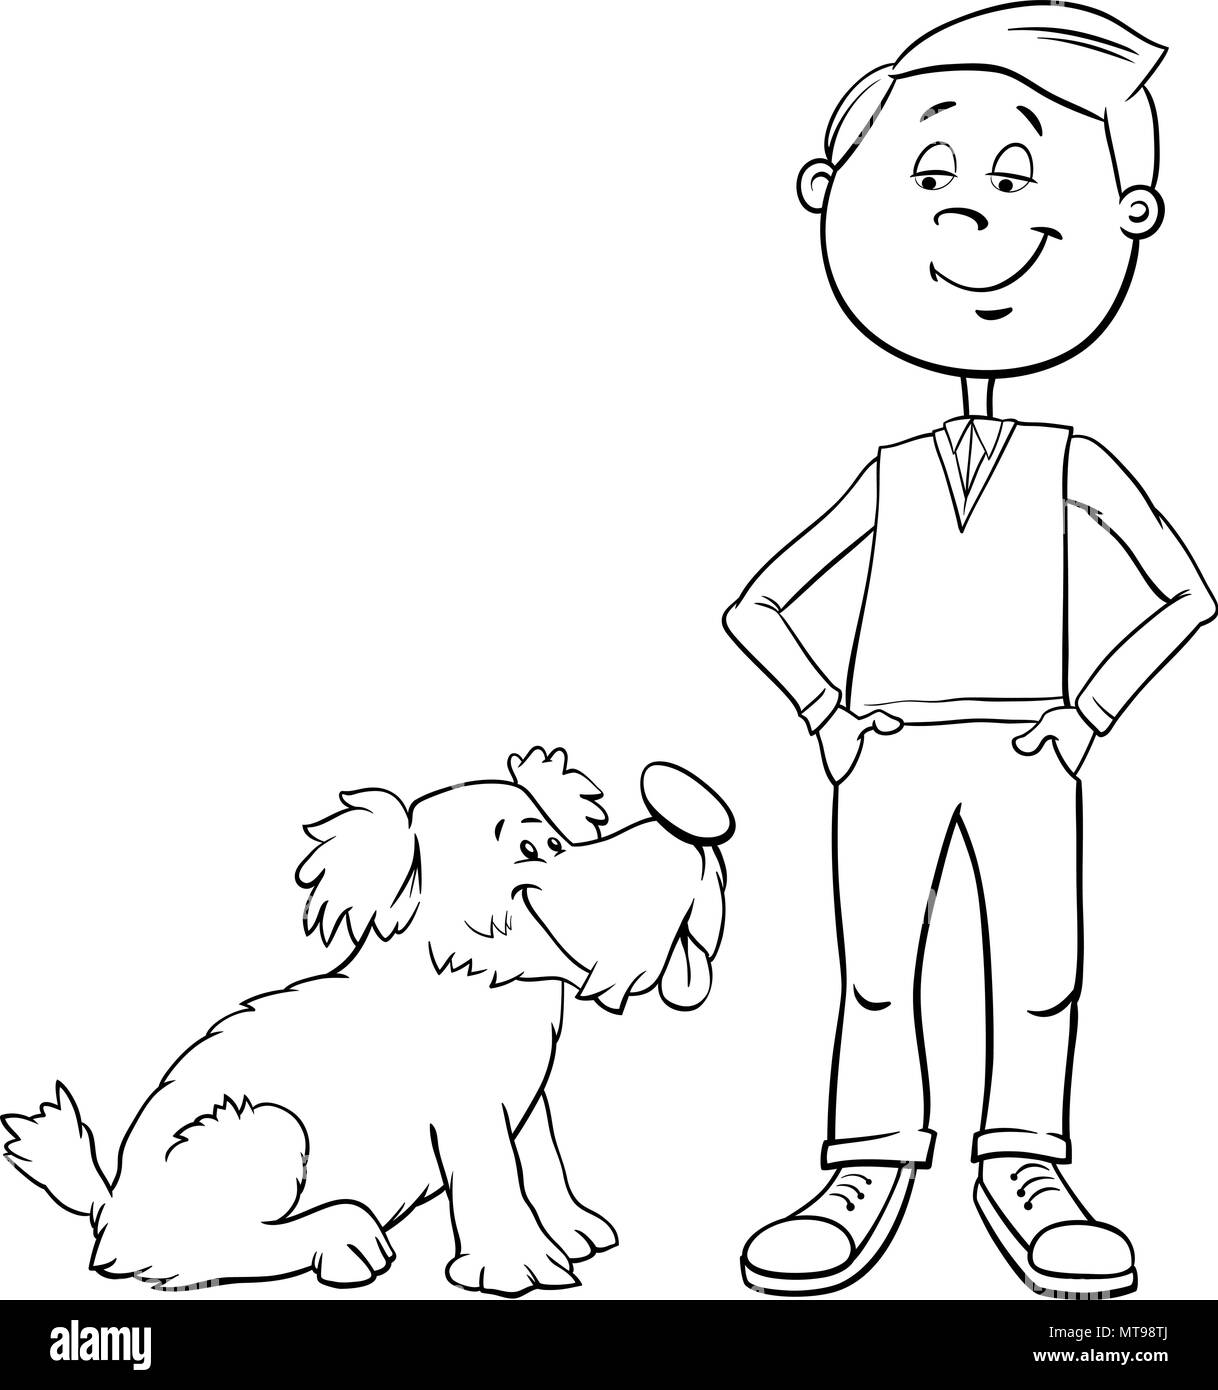 Black And White Cartoon Illustration Of Kid Boy With Cute Dog Or Puppy Coloring Book